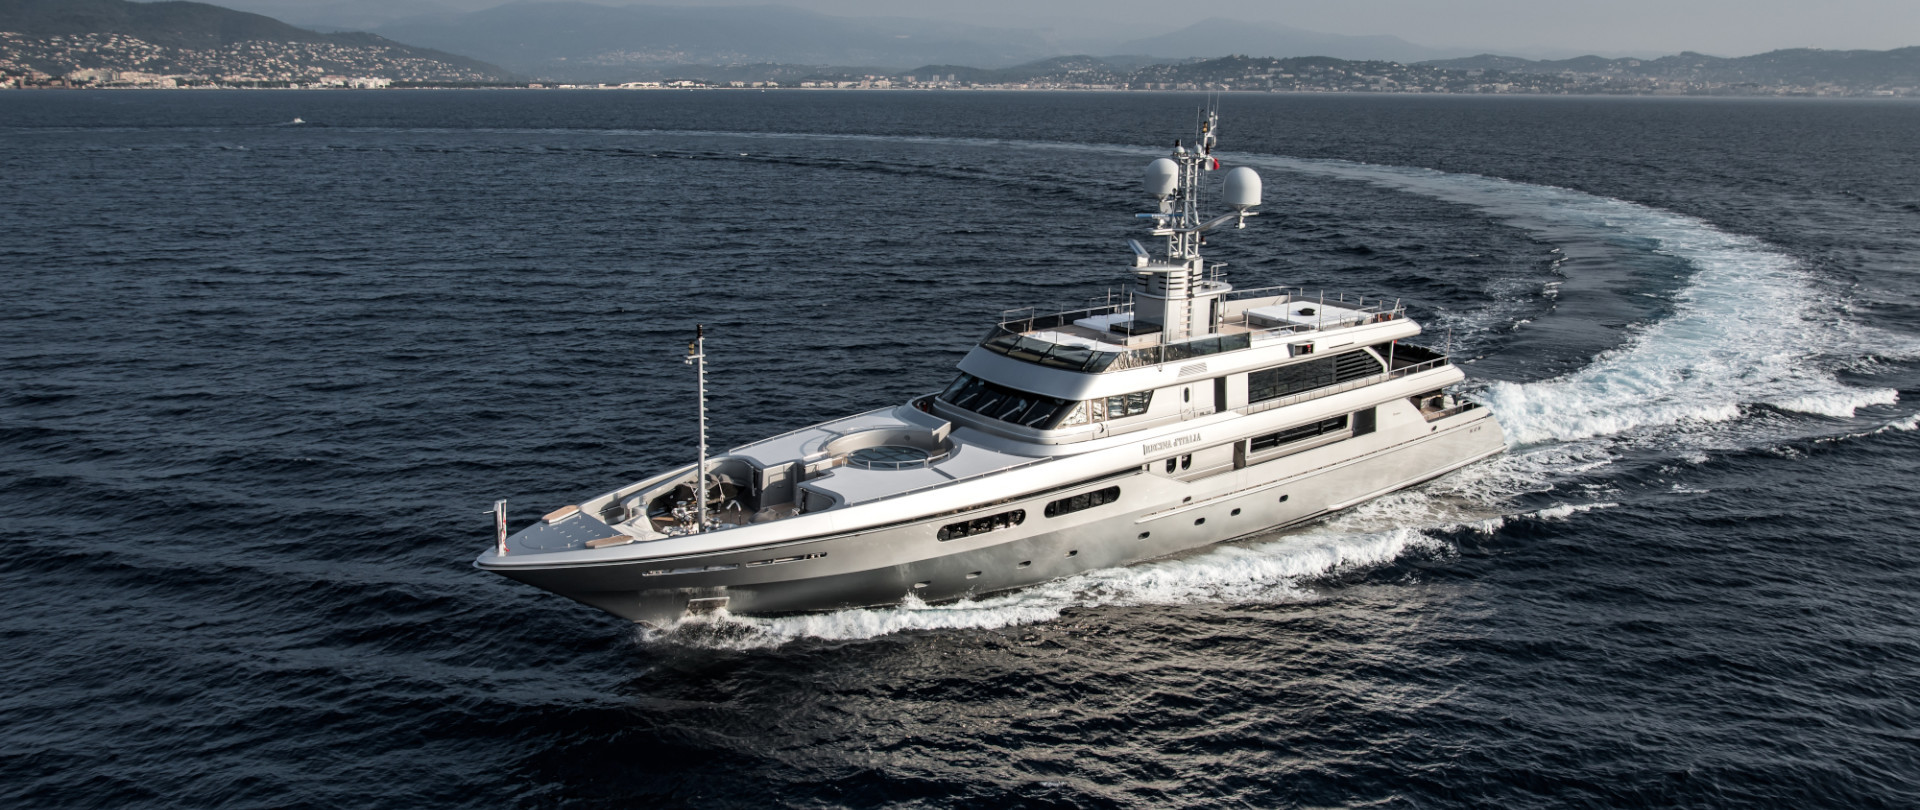 Regina d'Italia II - €2m price reduction confirmed photo 1